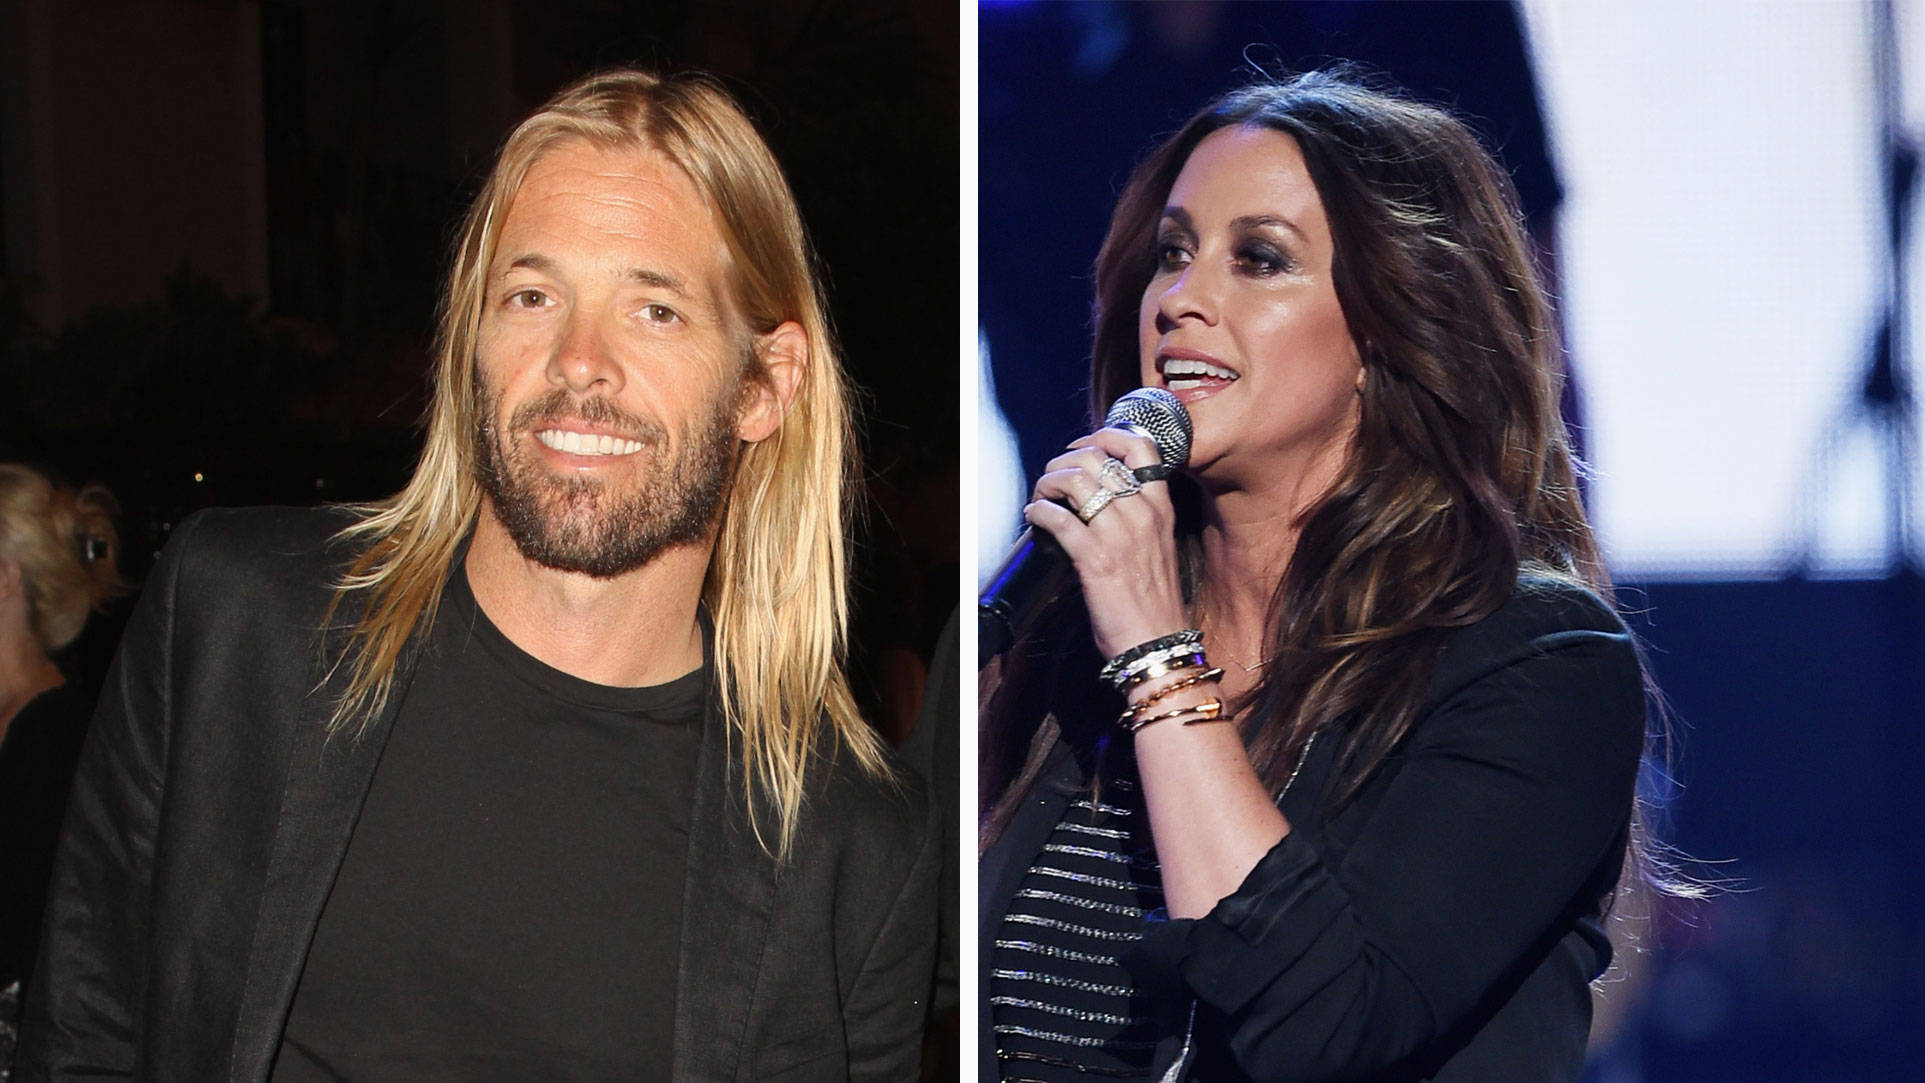 Could Foo Fighters' Taylor Hawkins join Alanis Morissette on her Jagged Little Pill 25 Anniversary tour?